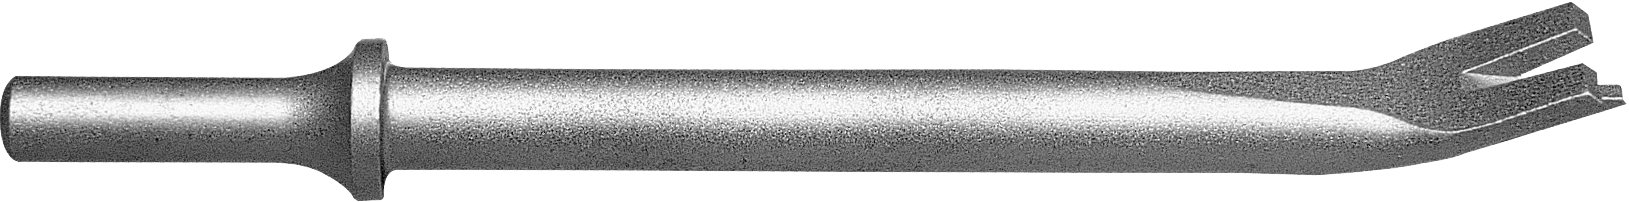 Champion Chisel, 7'' Claw Ripper Panel Cutter .401 Turn Type Shank by Champion Chisel Works (Image #1)